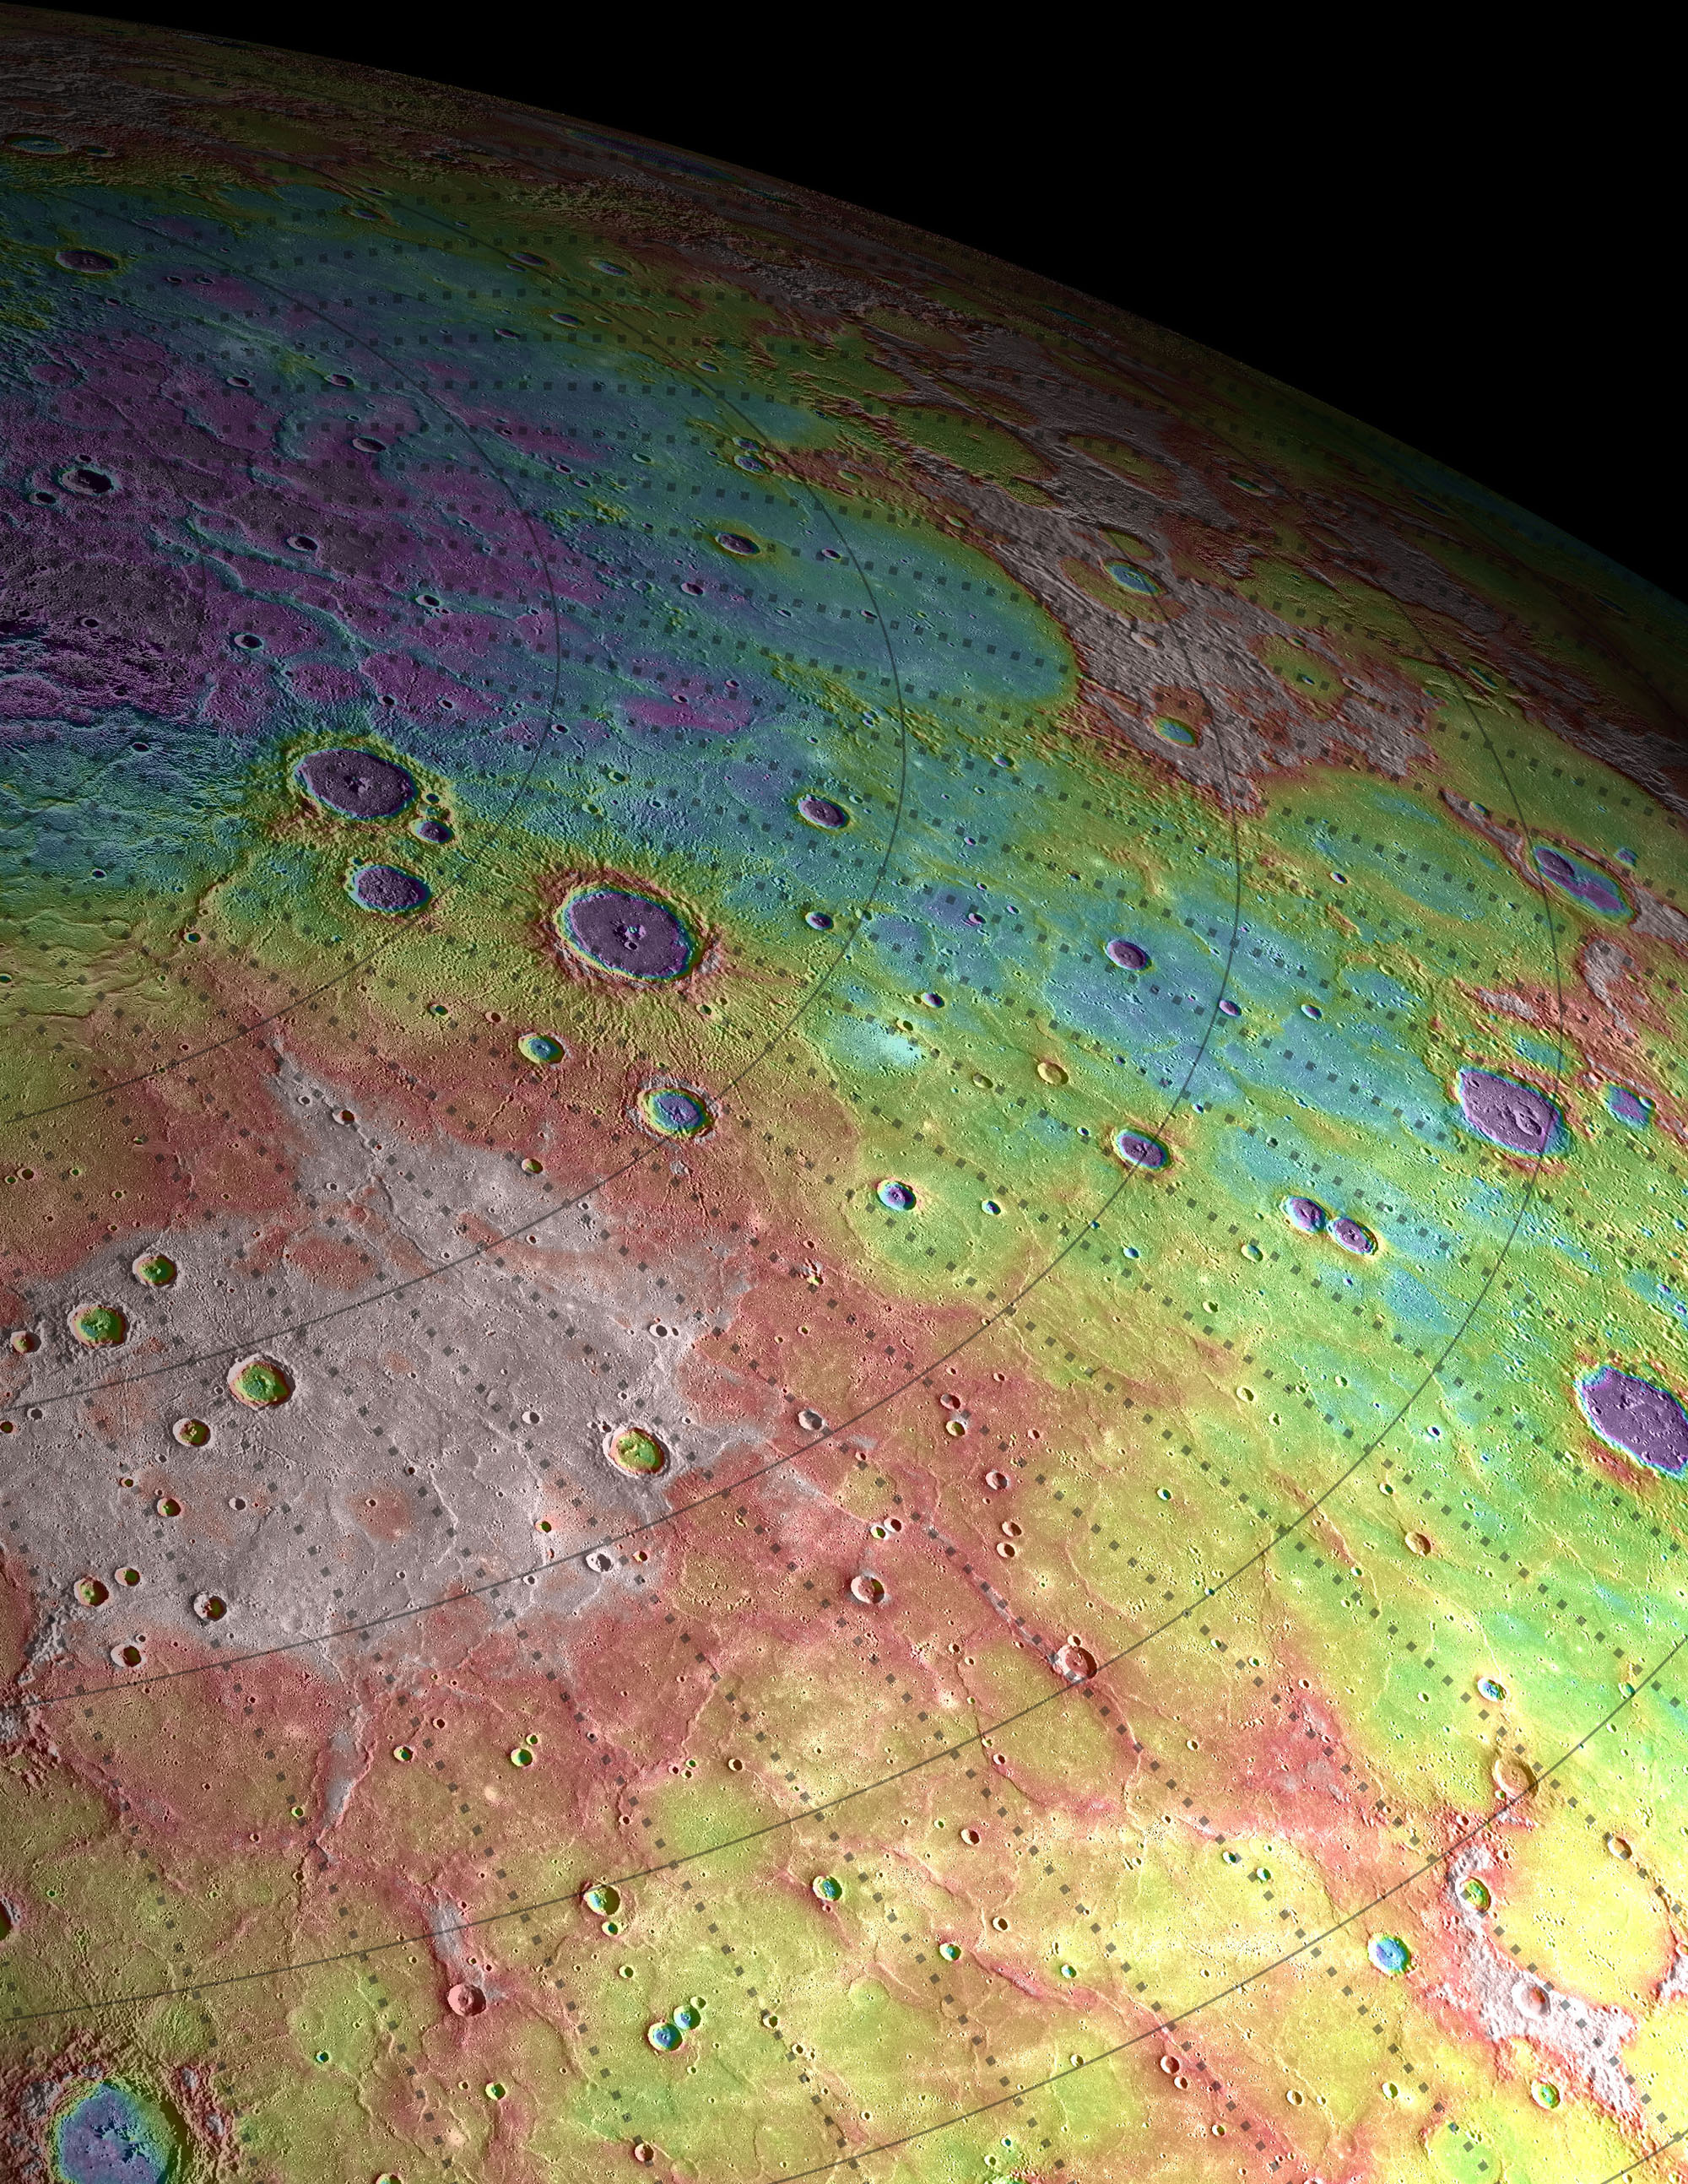 Mercury: The Highs and Lows of Goethe by NASA